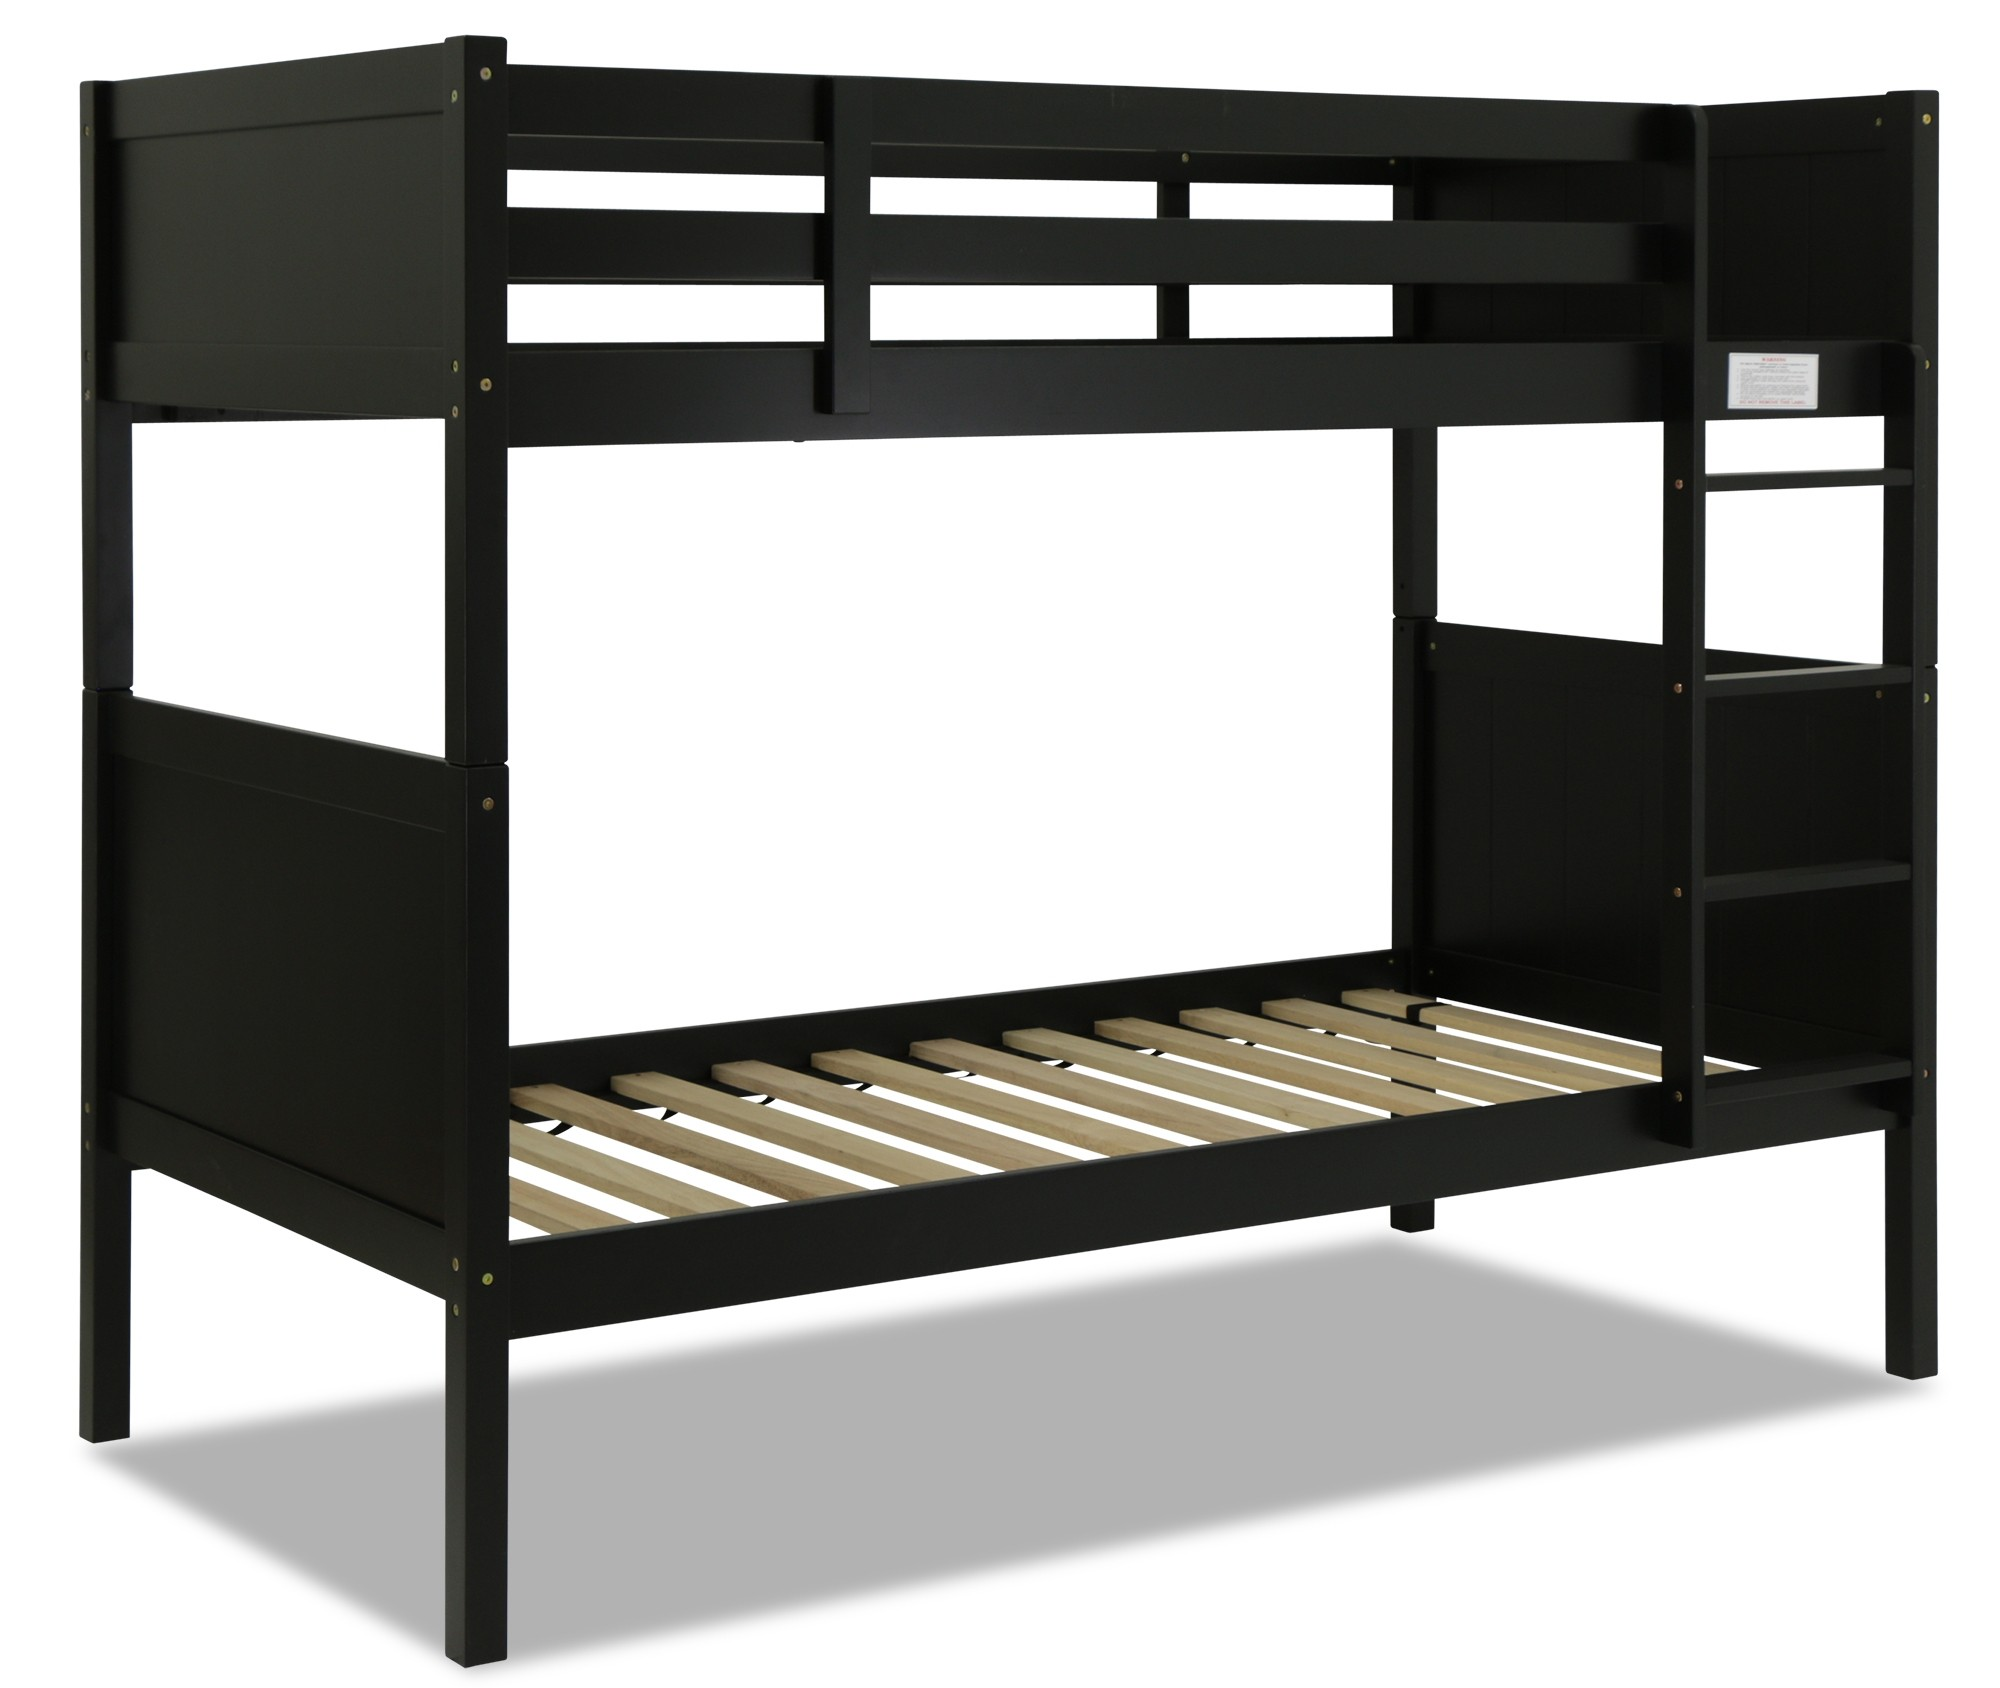 Rio Wooden Bunk Bed Black Furniture Home Decor Fortytwo